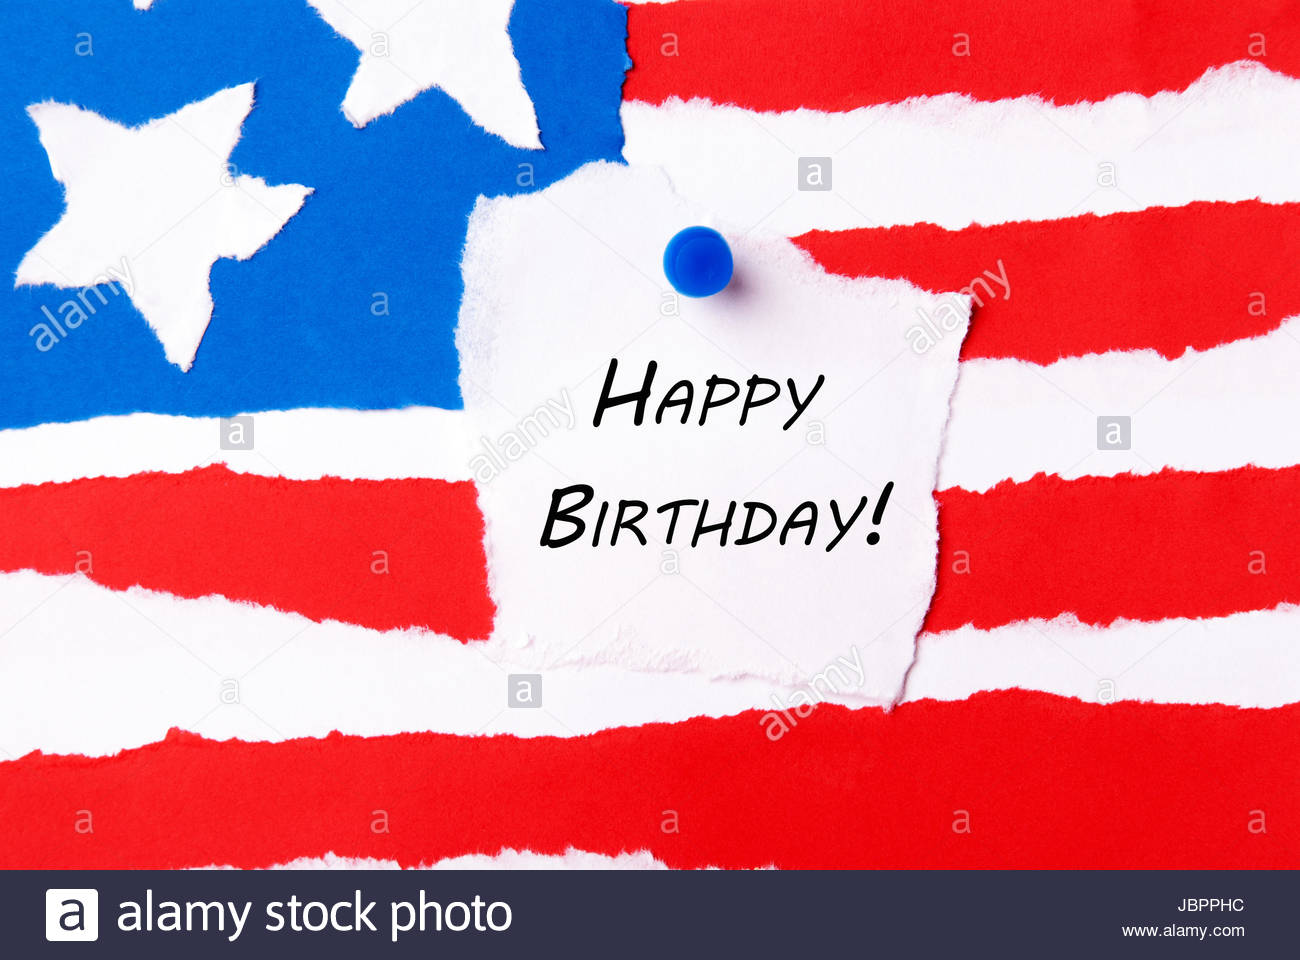 happy birthday american flag ; note-with-happy-birthday-on-an-american-flag-background-JBPPHC